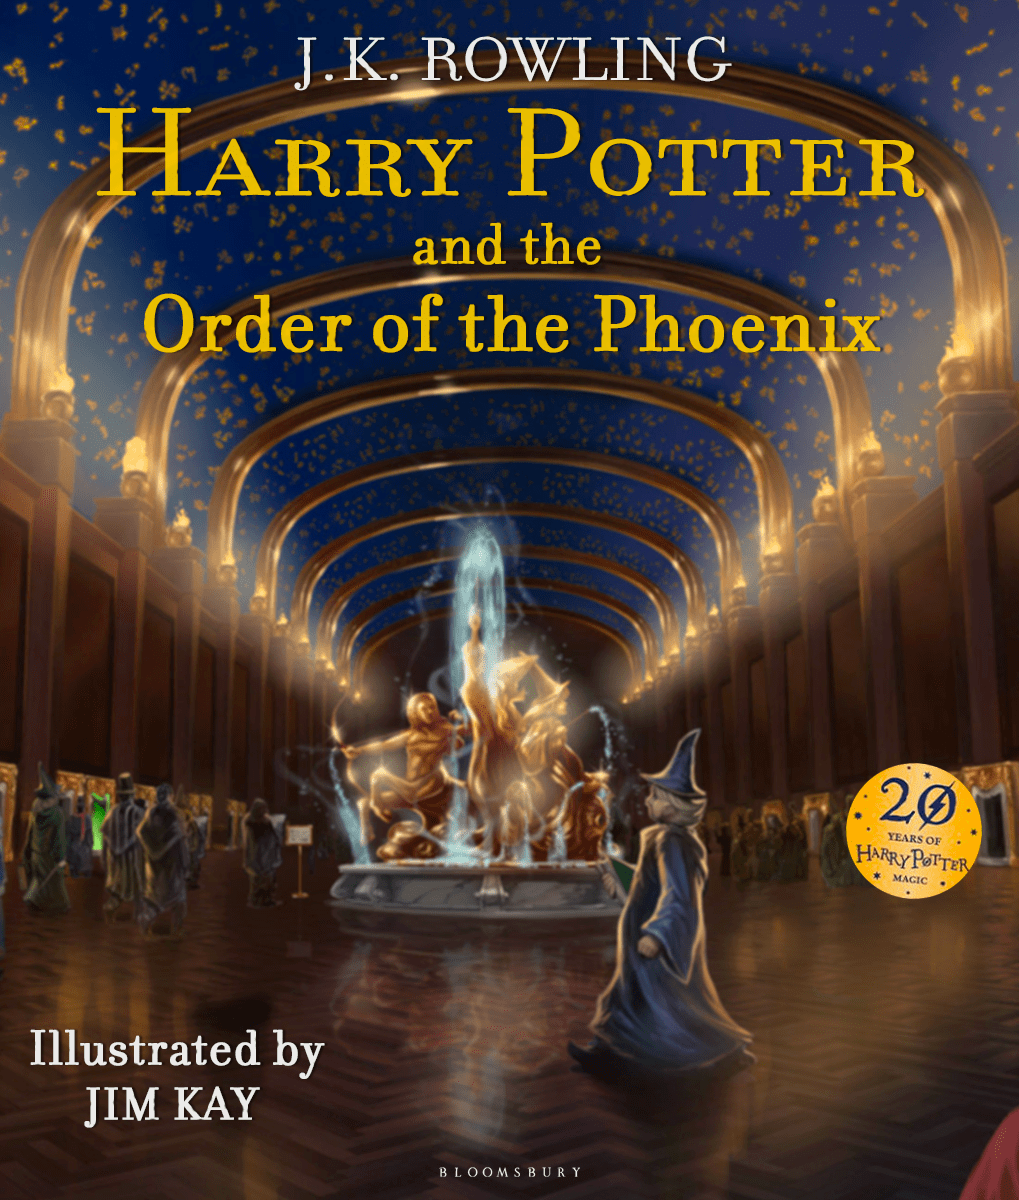 J K Rowling Harry Potter And The Order Of The Phoenix Illustrated Edition Harry Potter Illustrations Rowling Harry Potter Harry Potter Fantastic Beasts